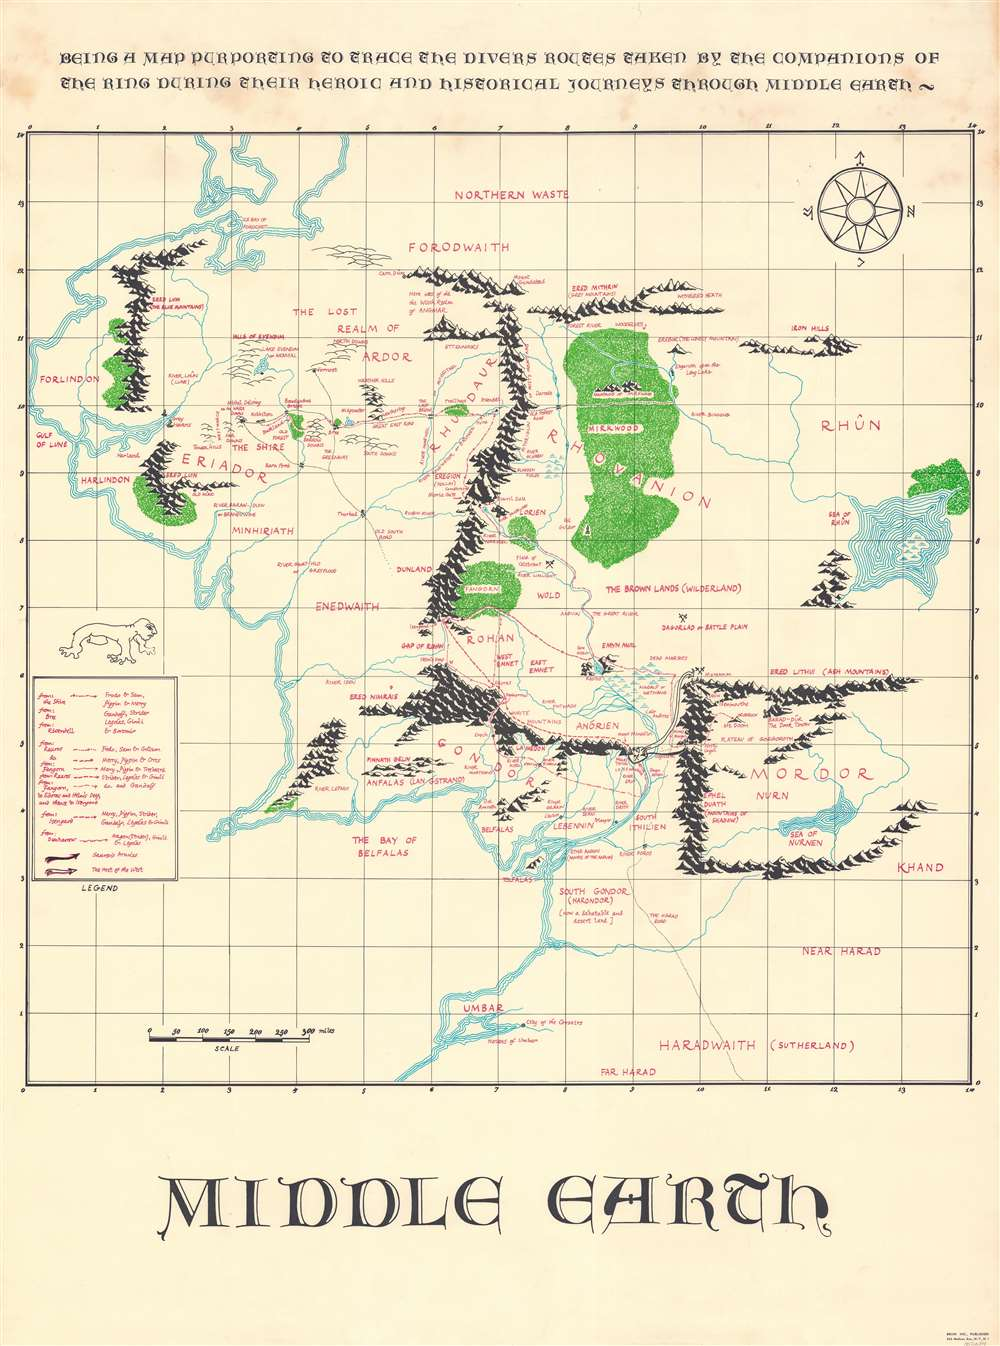 Middle Earth. Being a map purporting to trace the divers routes taken by the companions of the ring during their heroic and historical journeys through Middle Earth. - Main View